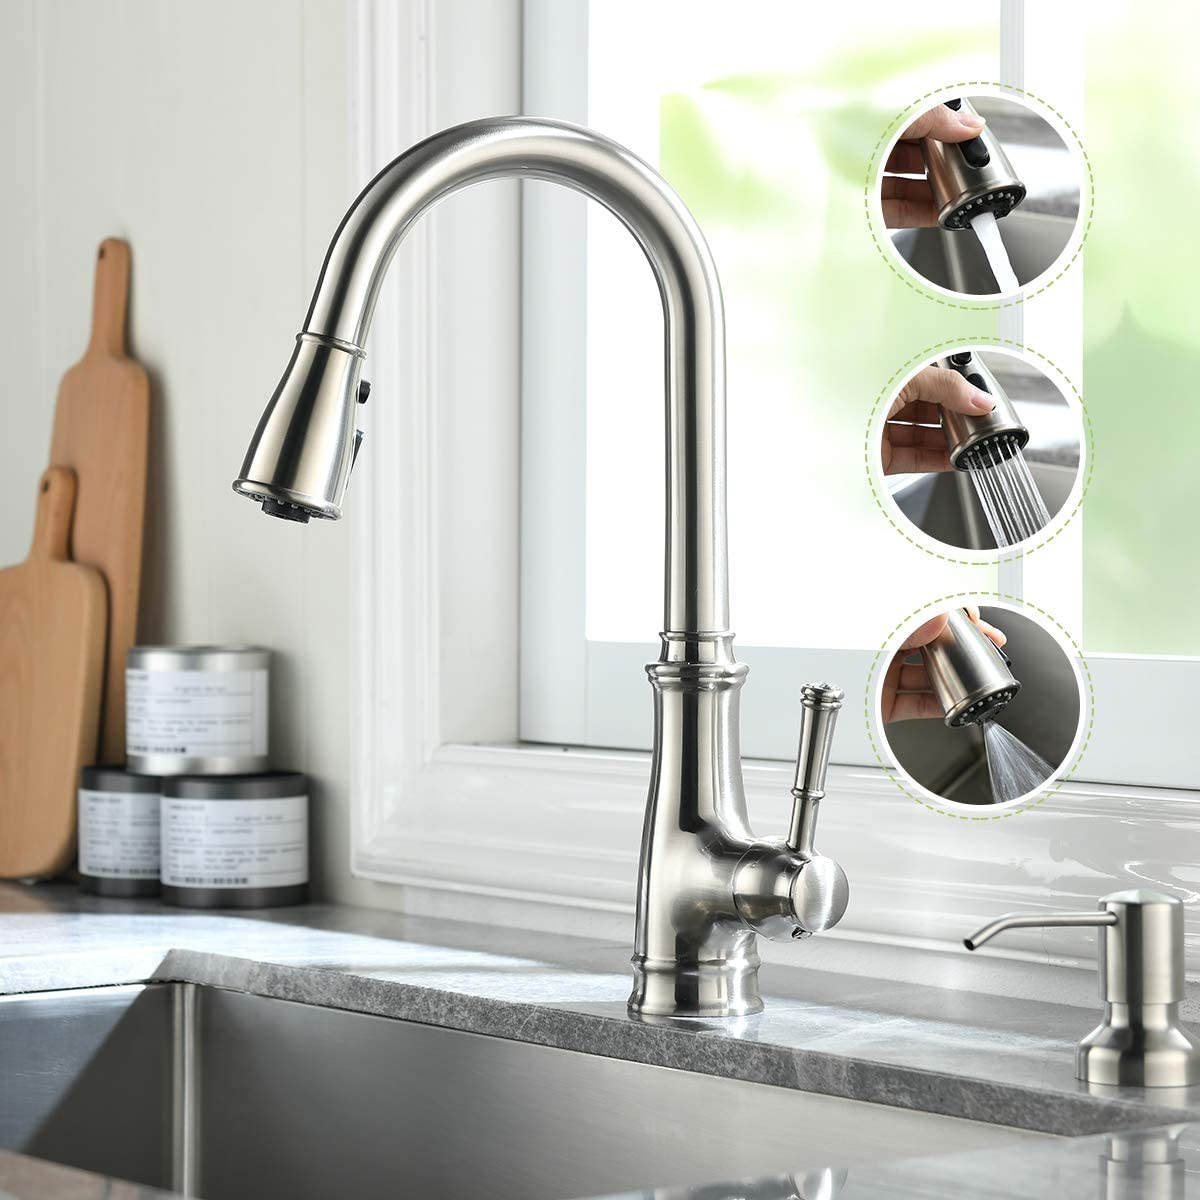 Arsem Kitchen Faucet with Pull Down Nickel Sprayer Stainless Hi Popular Long Beach Mall brand in the world